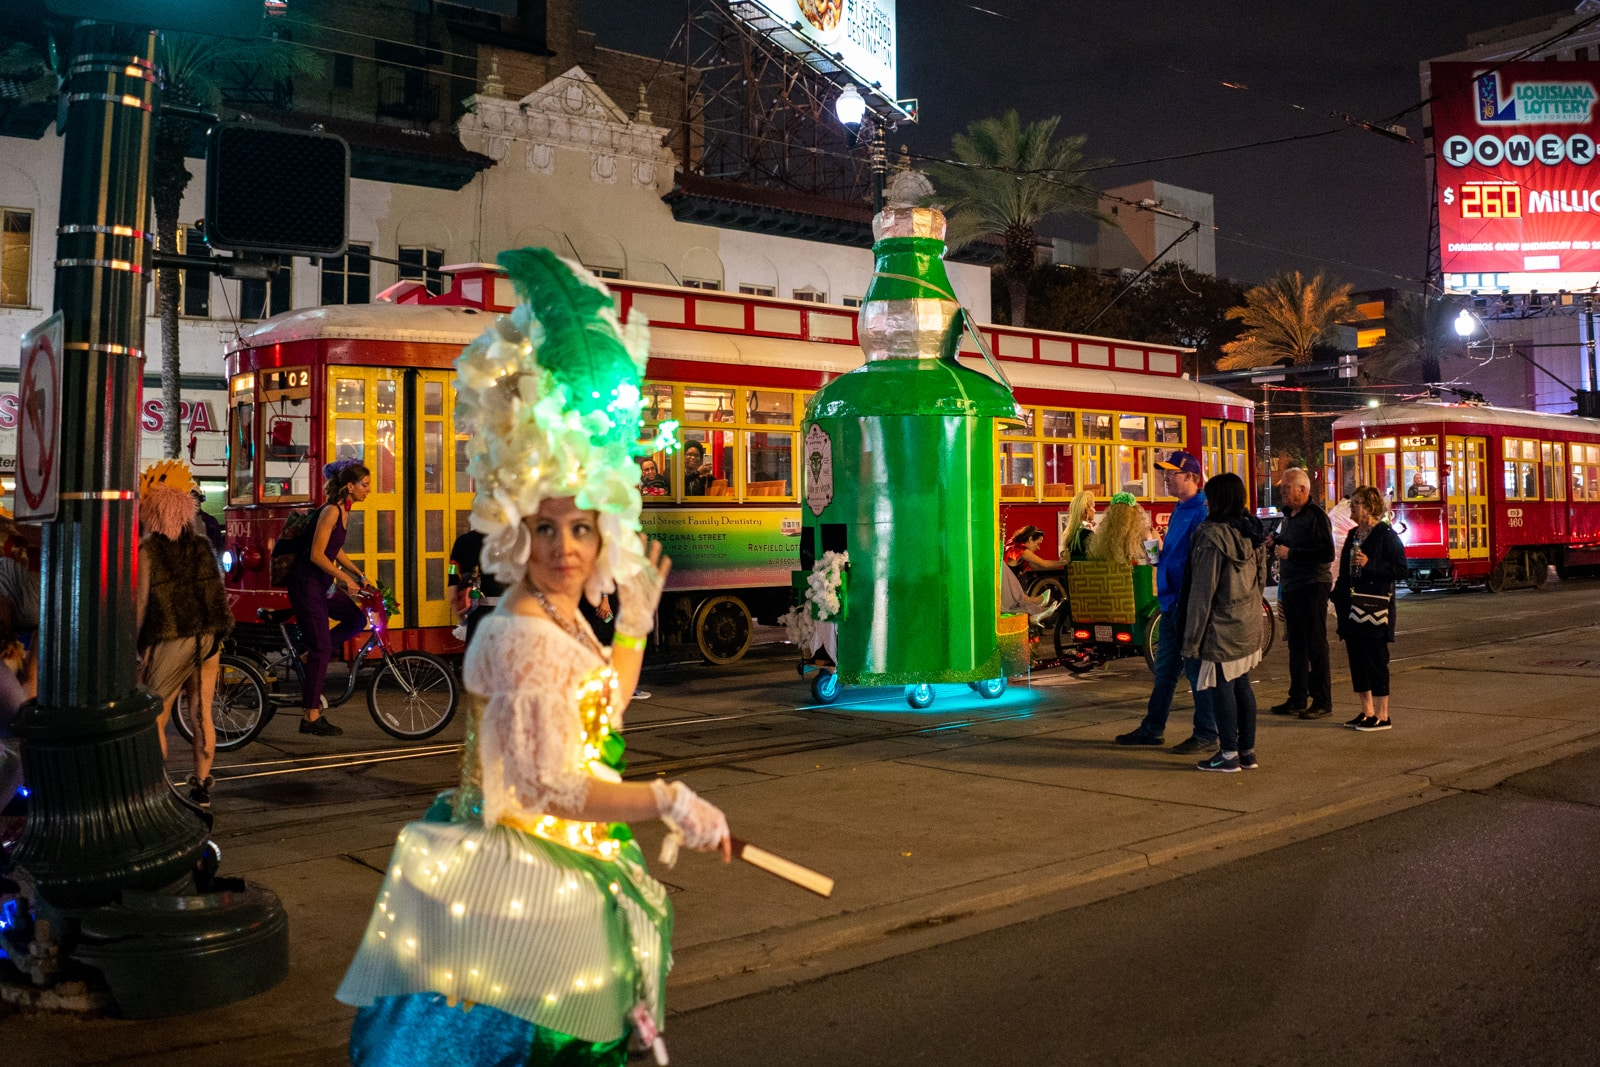 Paraders and floats exiting the parade next to a New Orleans street car